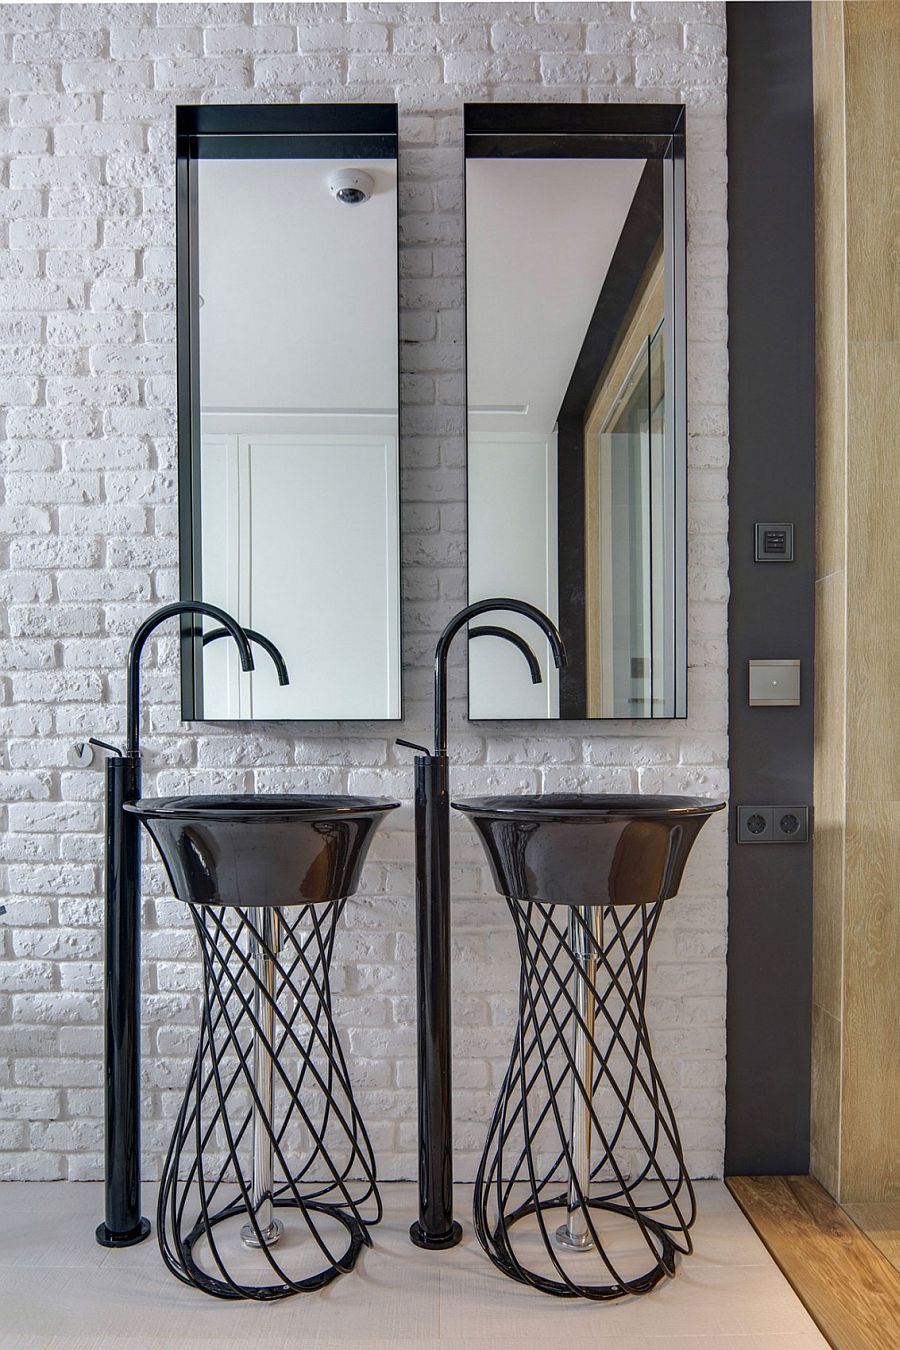 Trendy twin sinks in the bathroom with brick wall